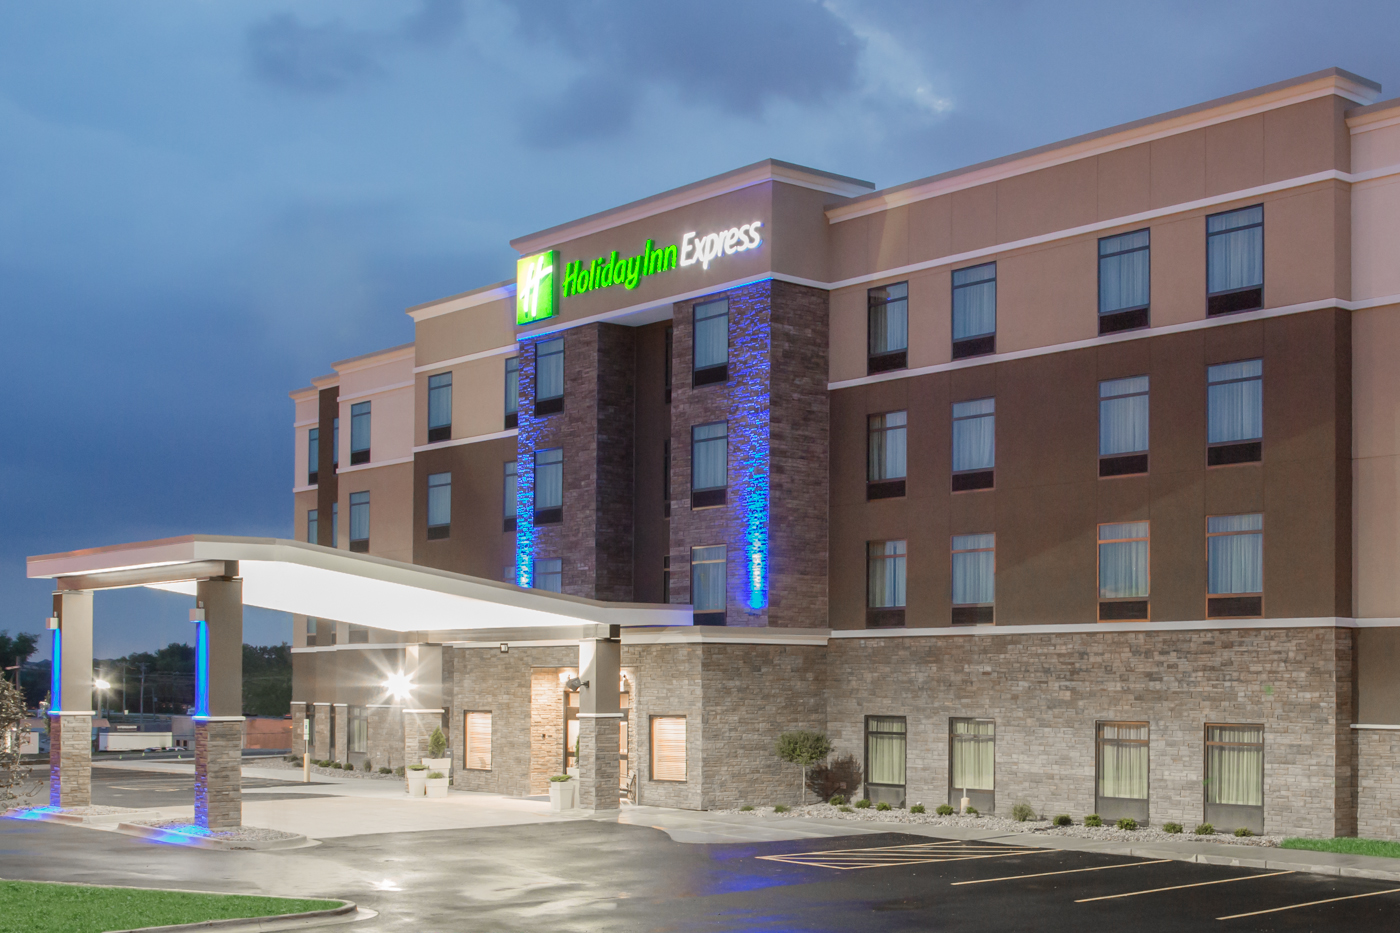 Outside nighttime view of a Holiday Inn Express